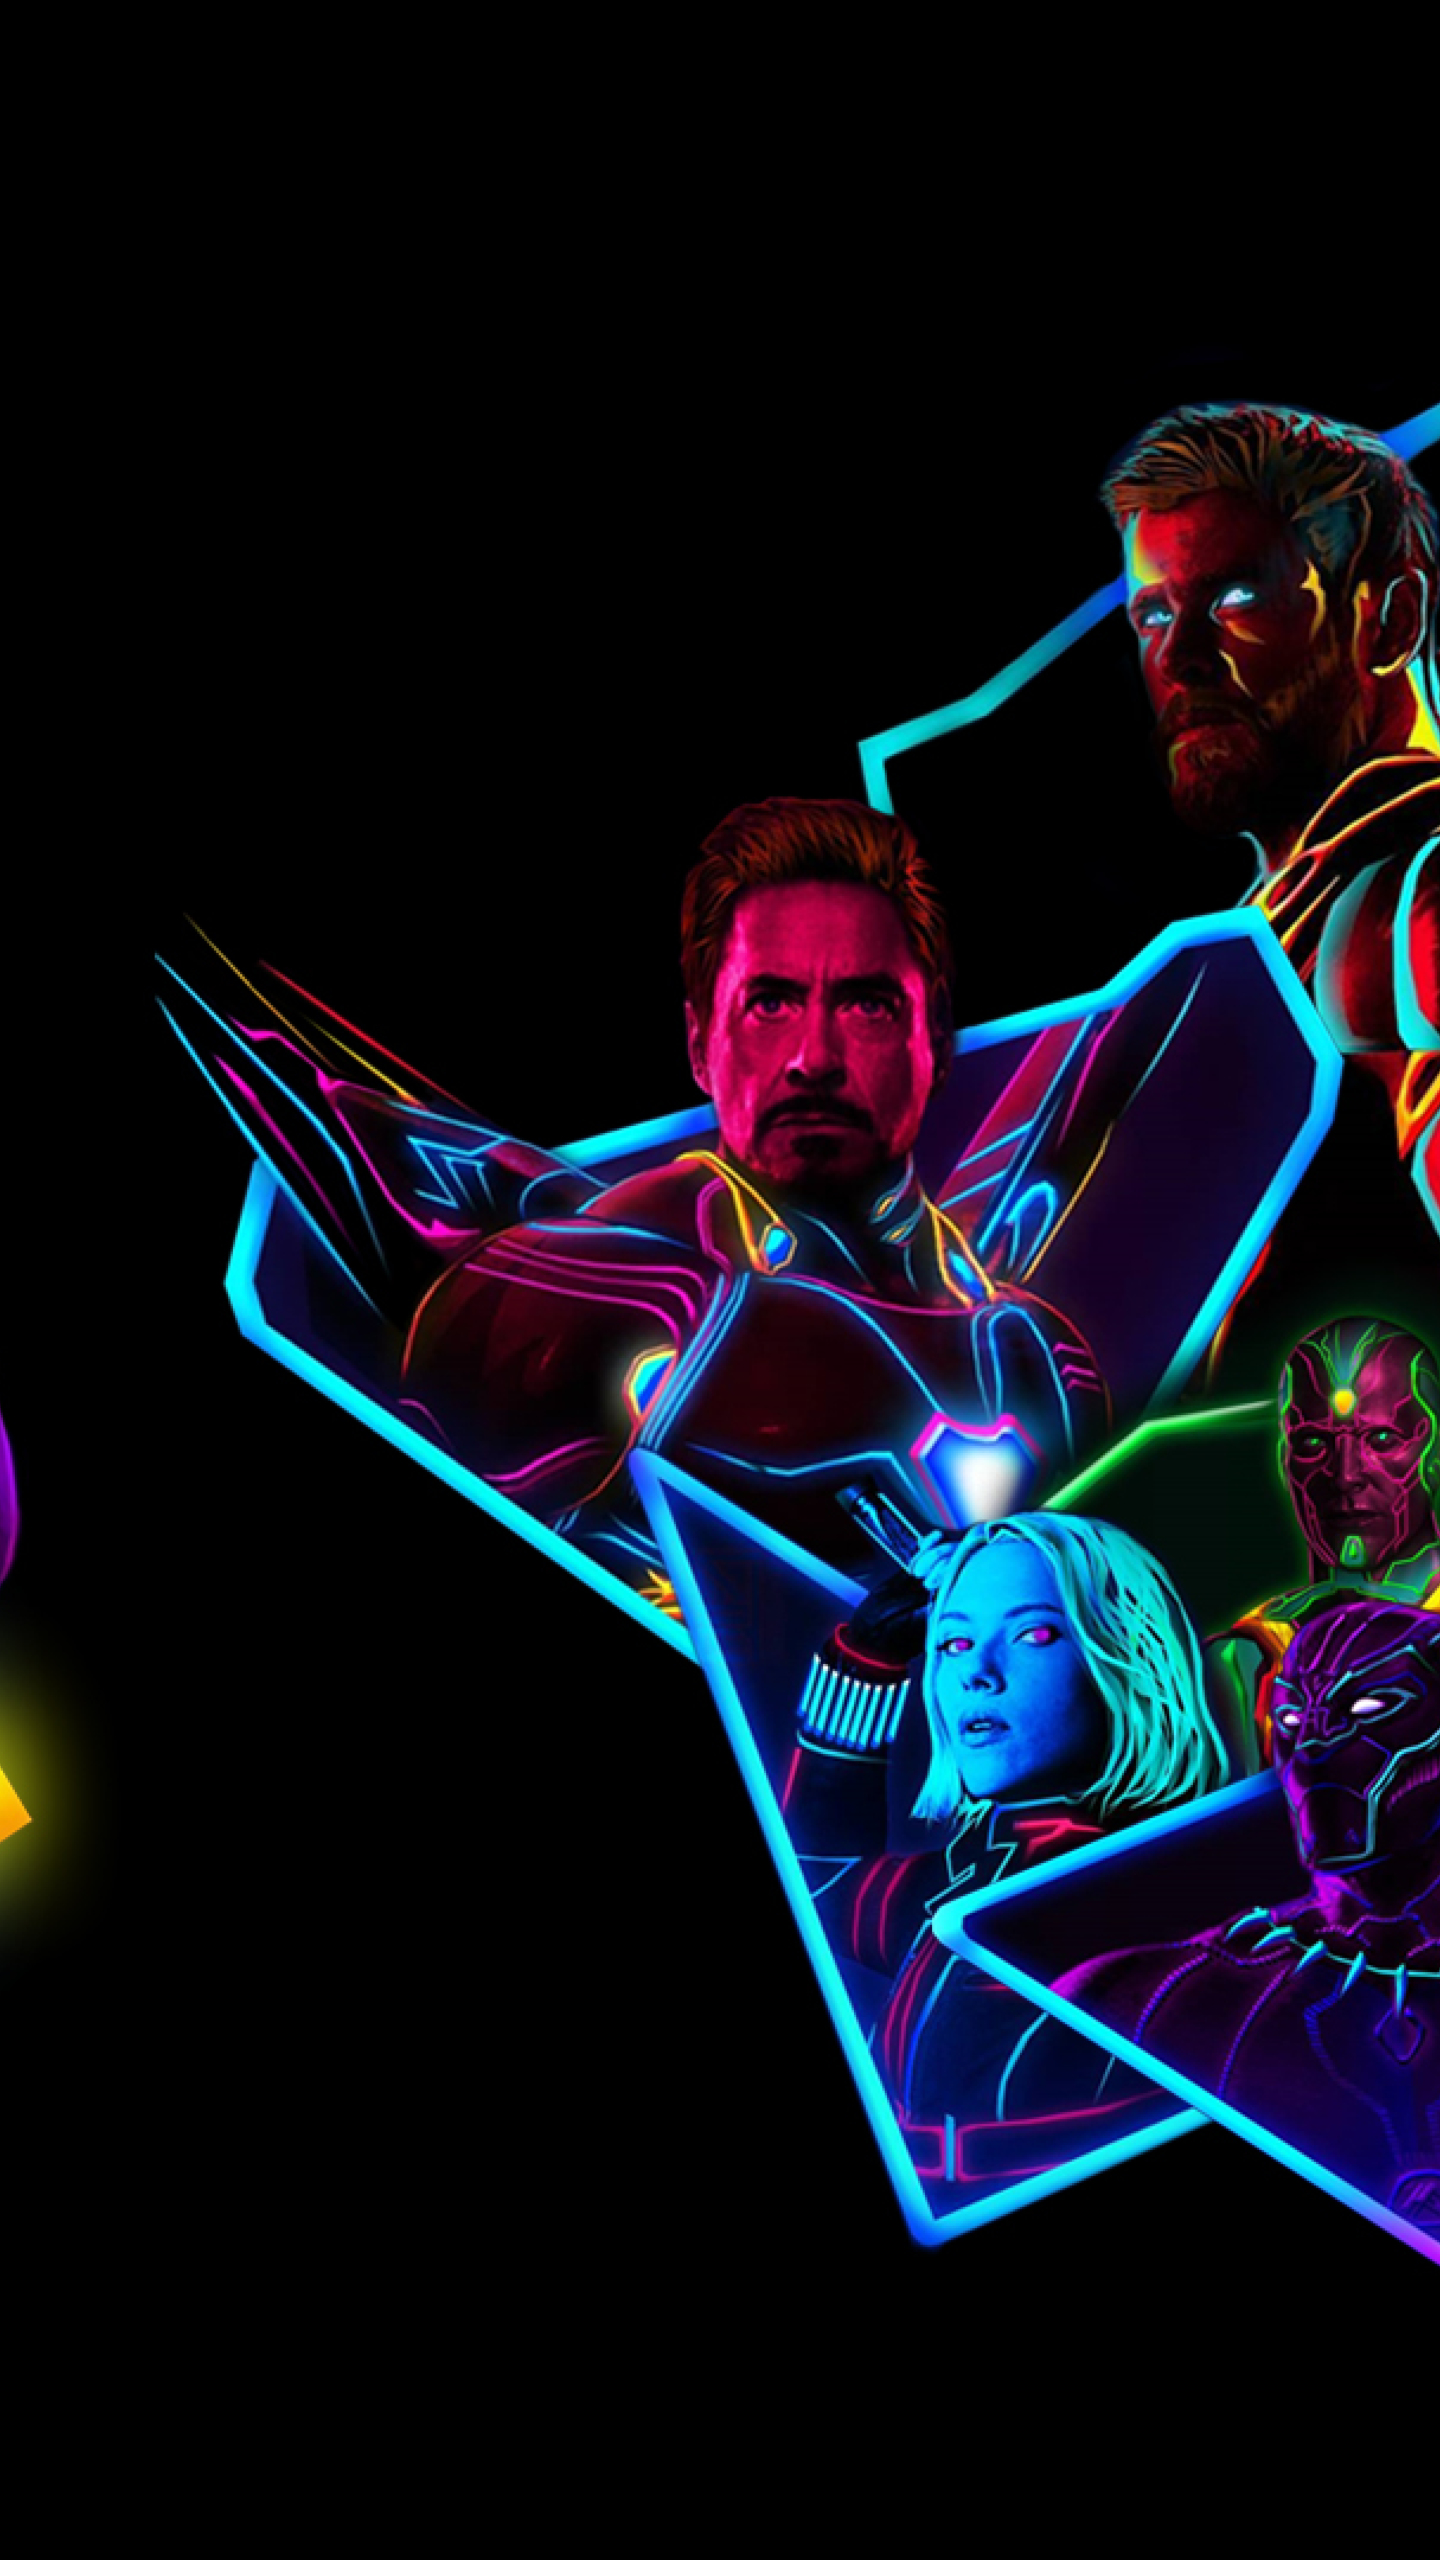 1440x2560 Avengers Infinity War 80s Neon Style Art Samsung Galaxy S6 S7 Google Pixel Xl Nexus 6 6p Lg G5 Wallpaper Hd Movies 4k Wallpapers Images Photos And Background